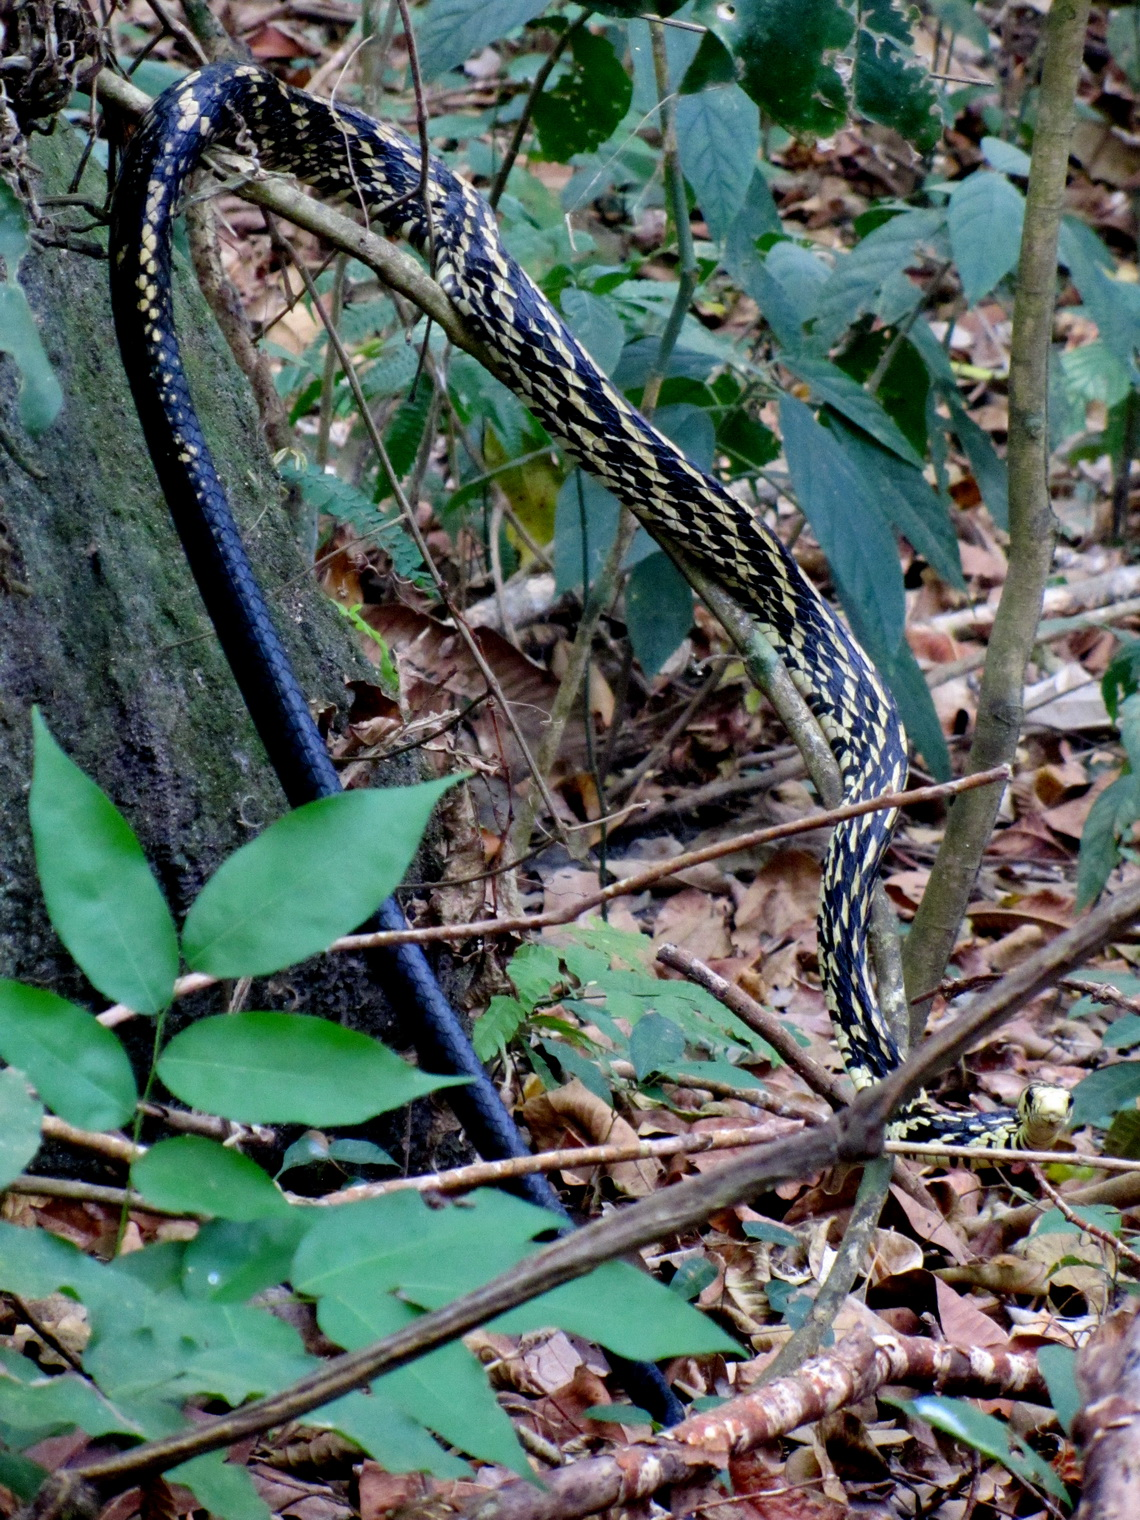 Snake Spilotes Pullatus, which is between 250 and 300 cm long. Its preys are birds, small mammals, amphibians, lizards and other snakes